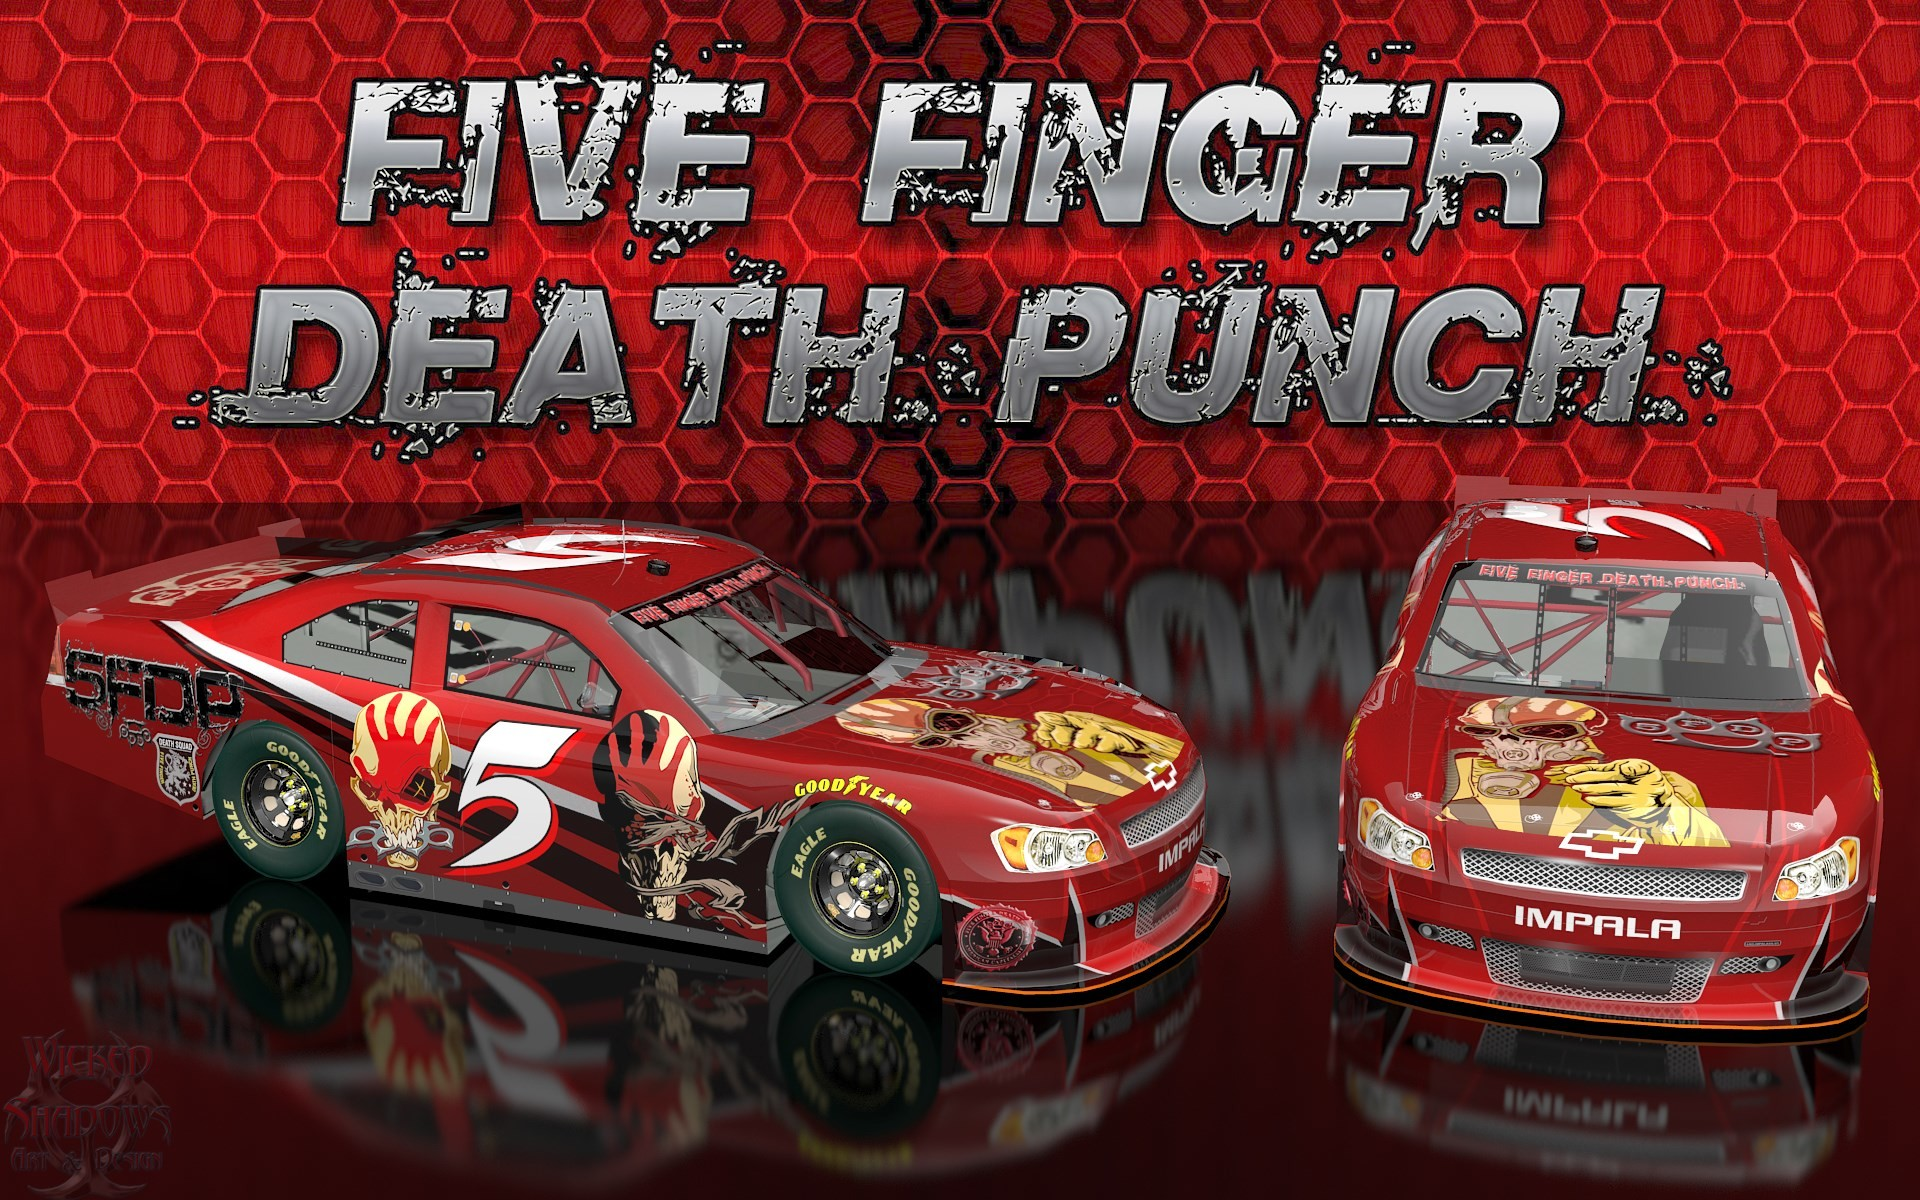 1920x1200 Free screensaver five finger death punch pic, Hawke Smith 2017-03-20